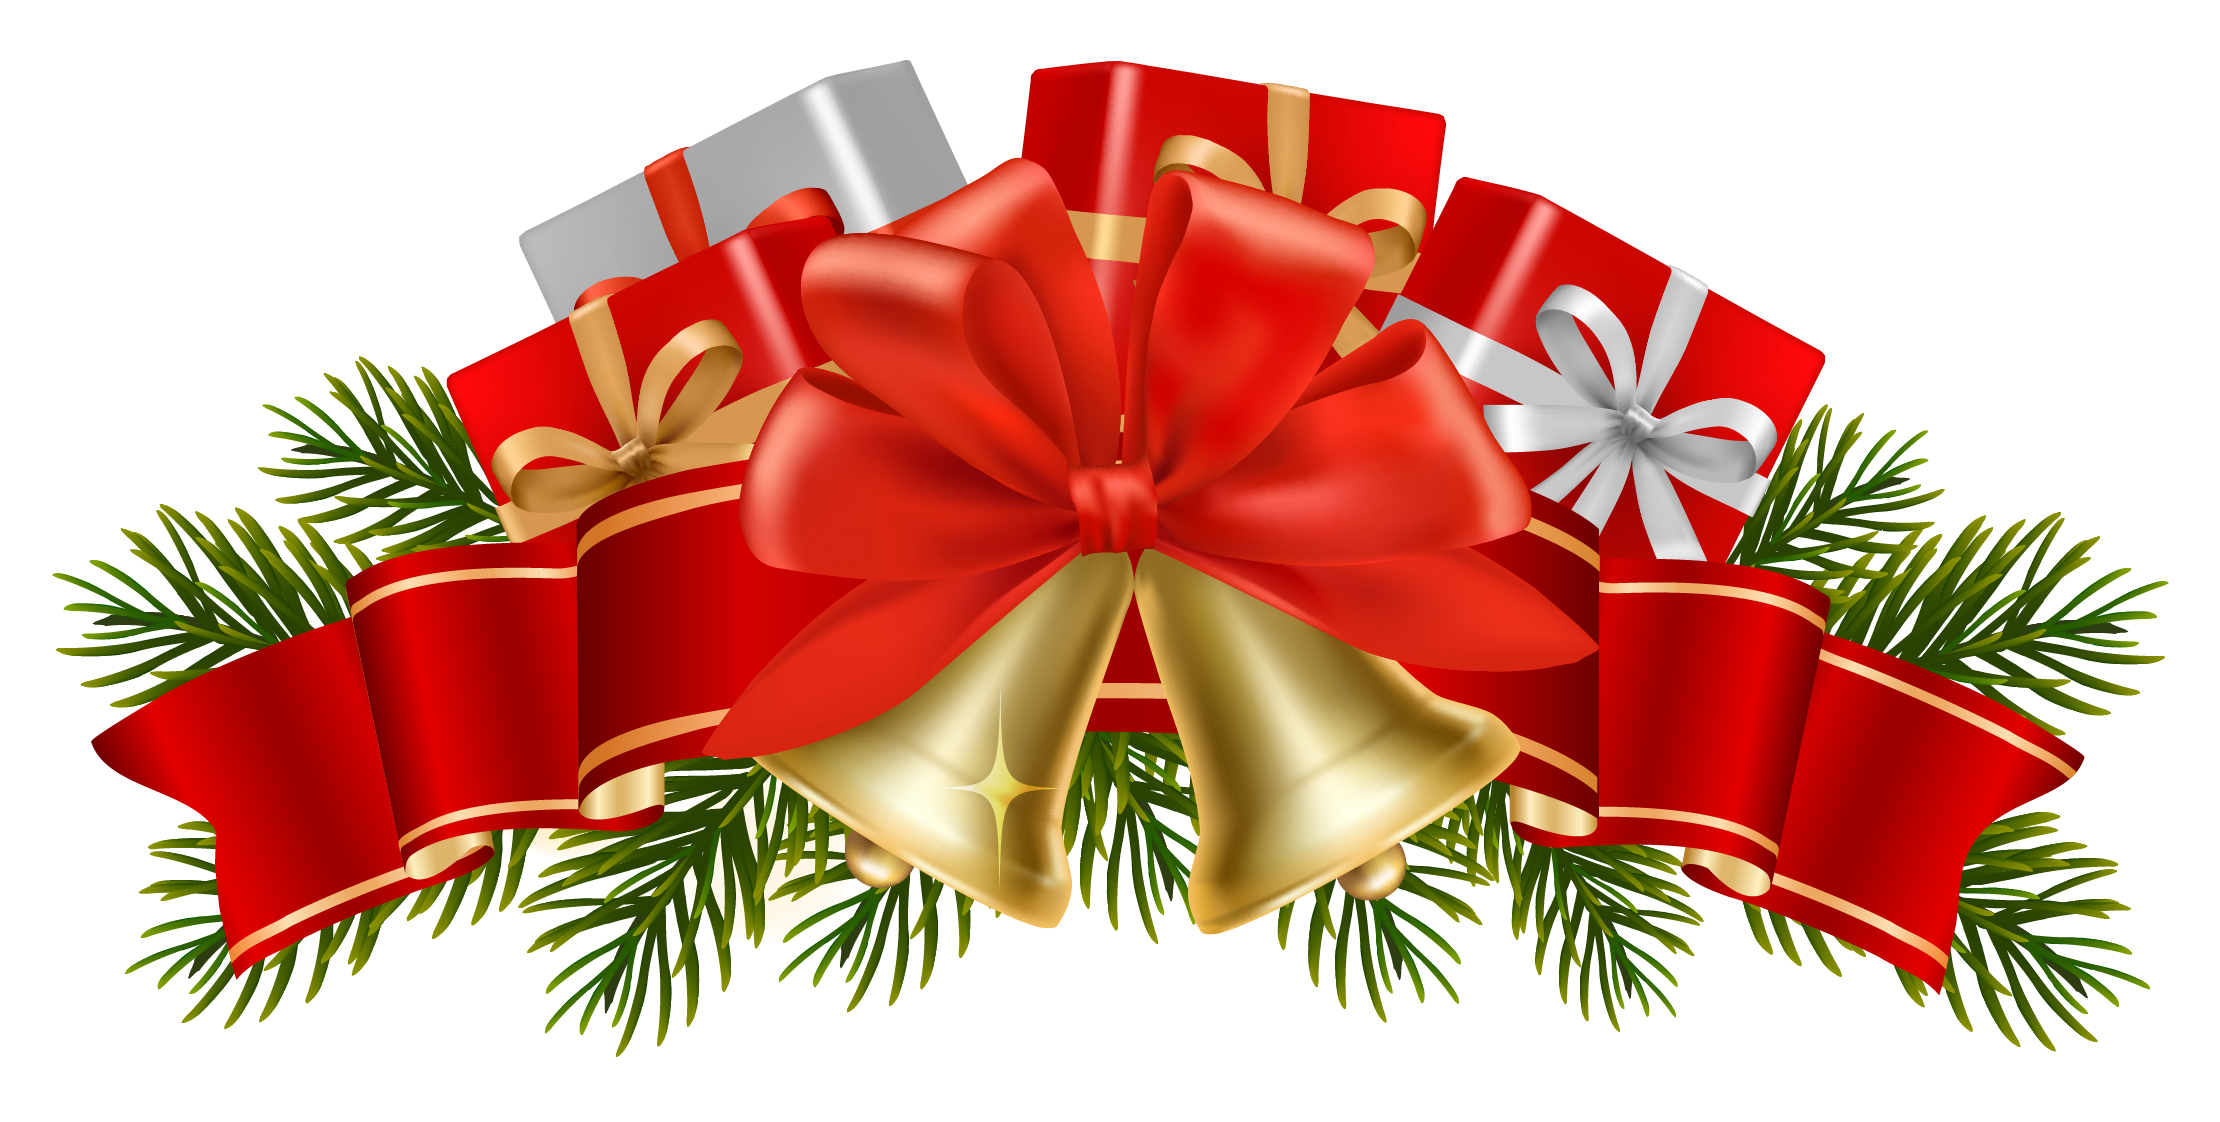 Christmas decor clipart #14